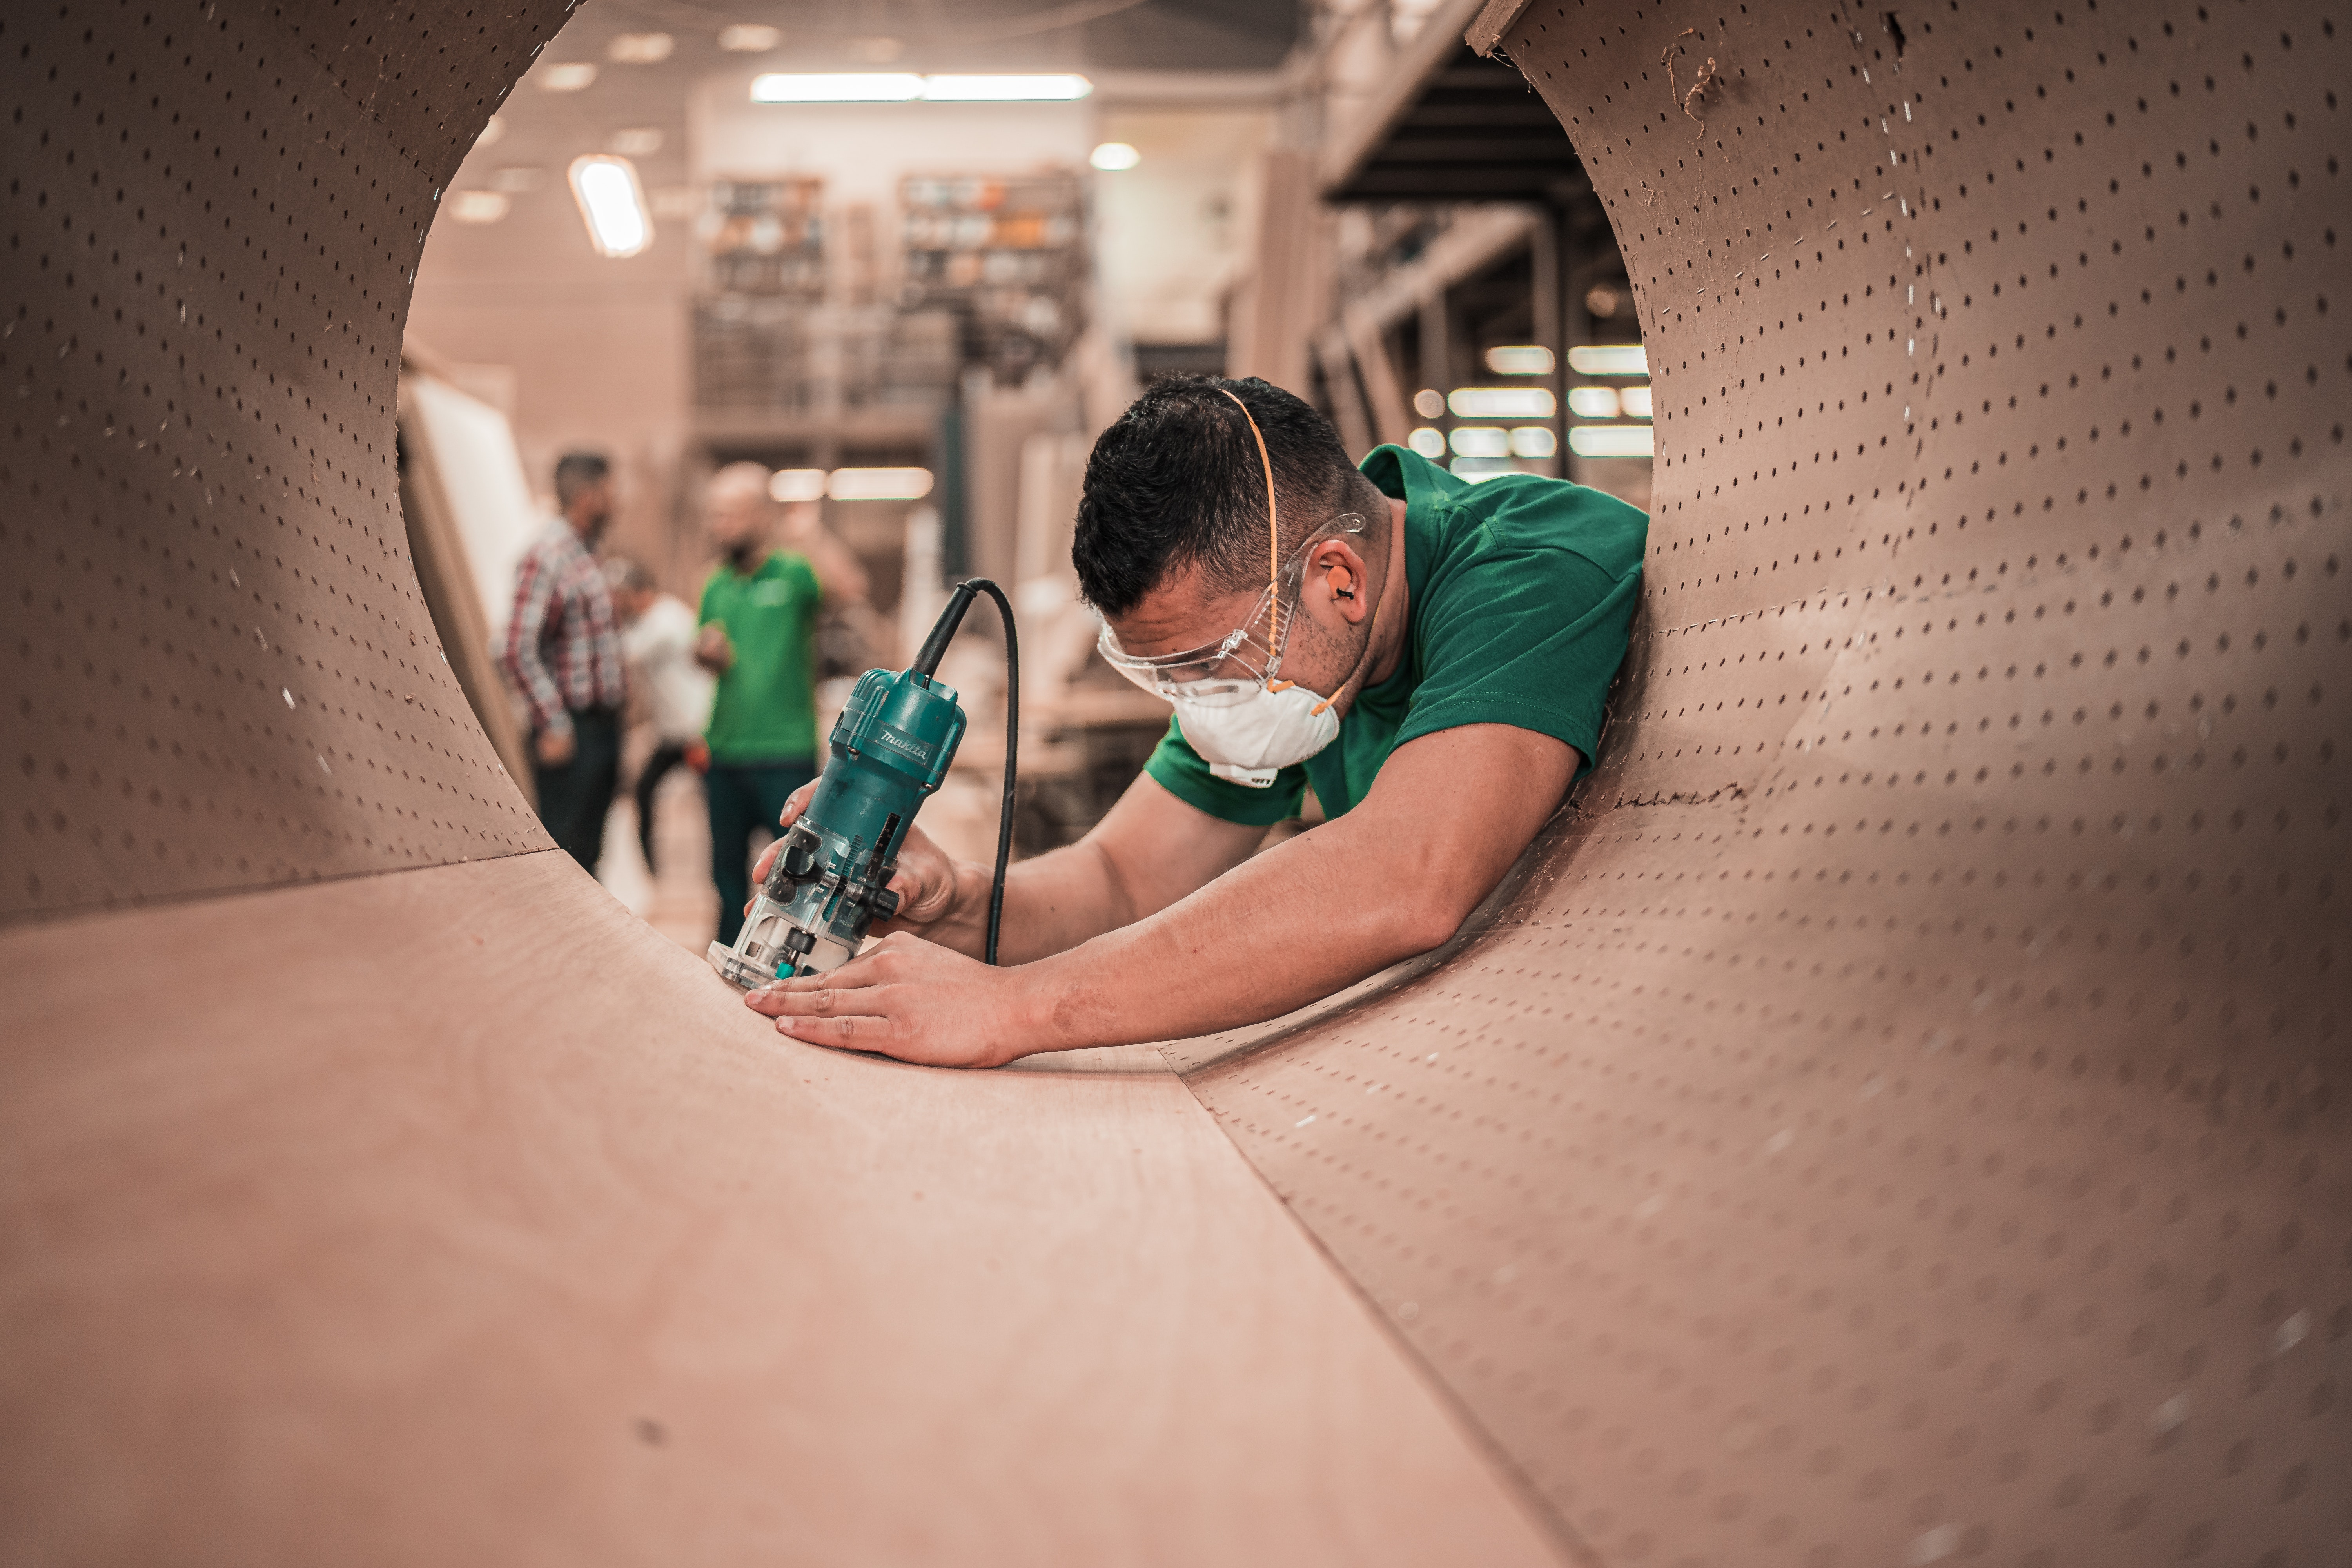 7 Unexpected Workers That Manufacturers Can Hire to Kick the Labor Shortage